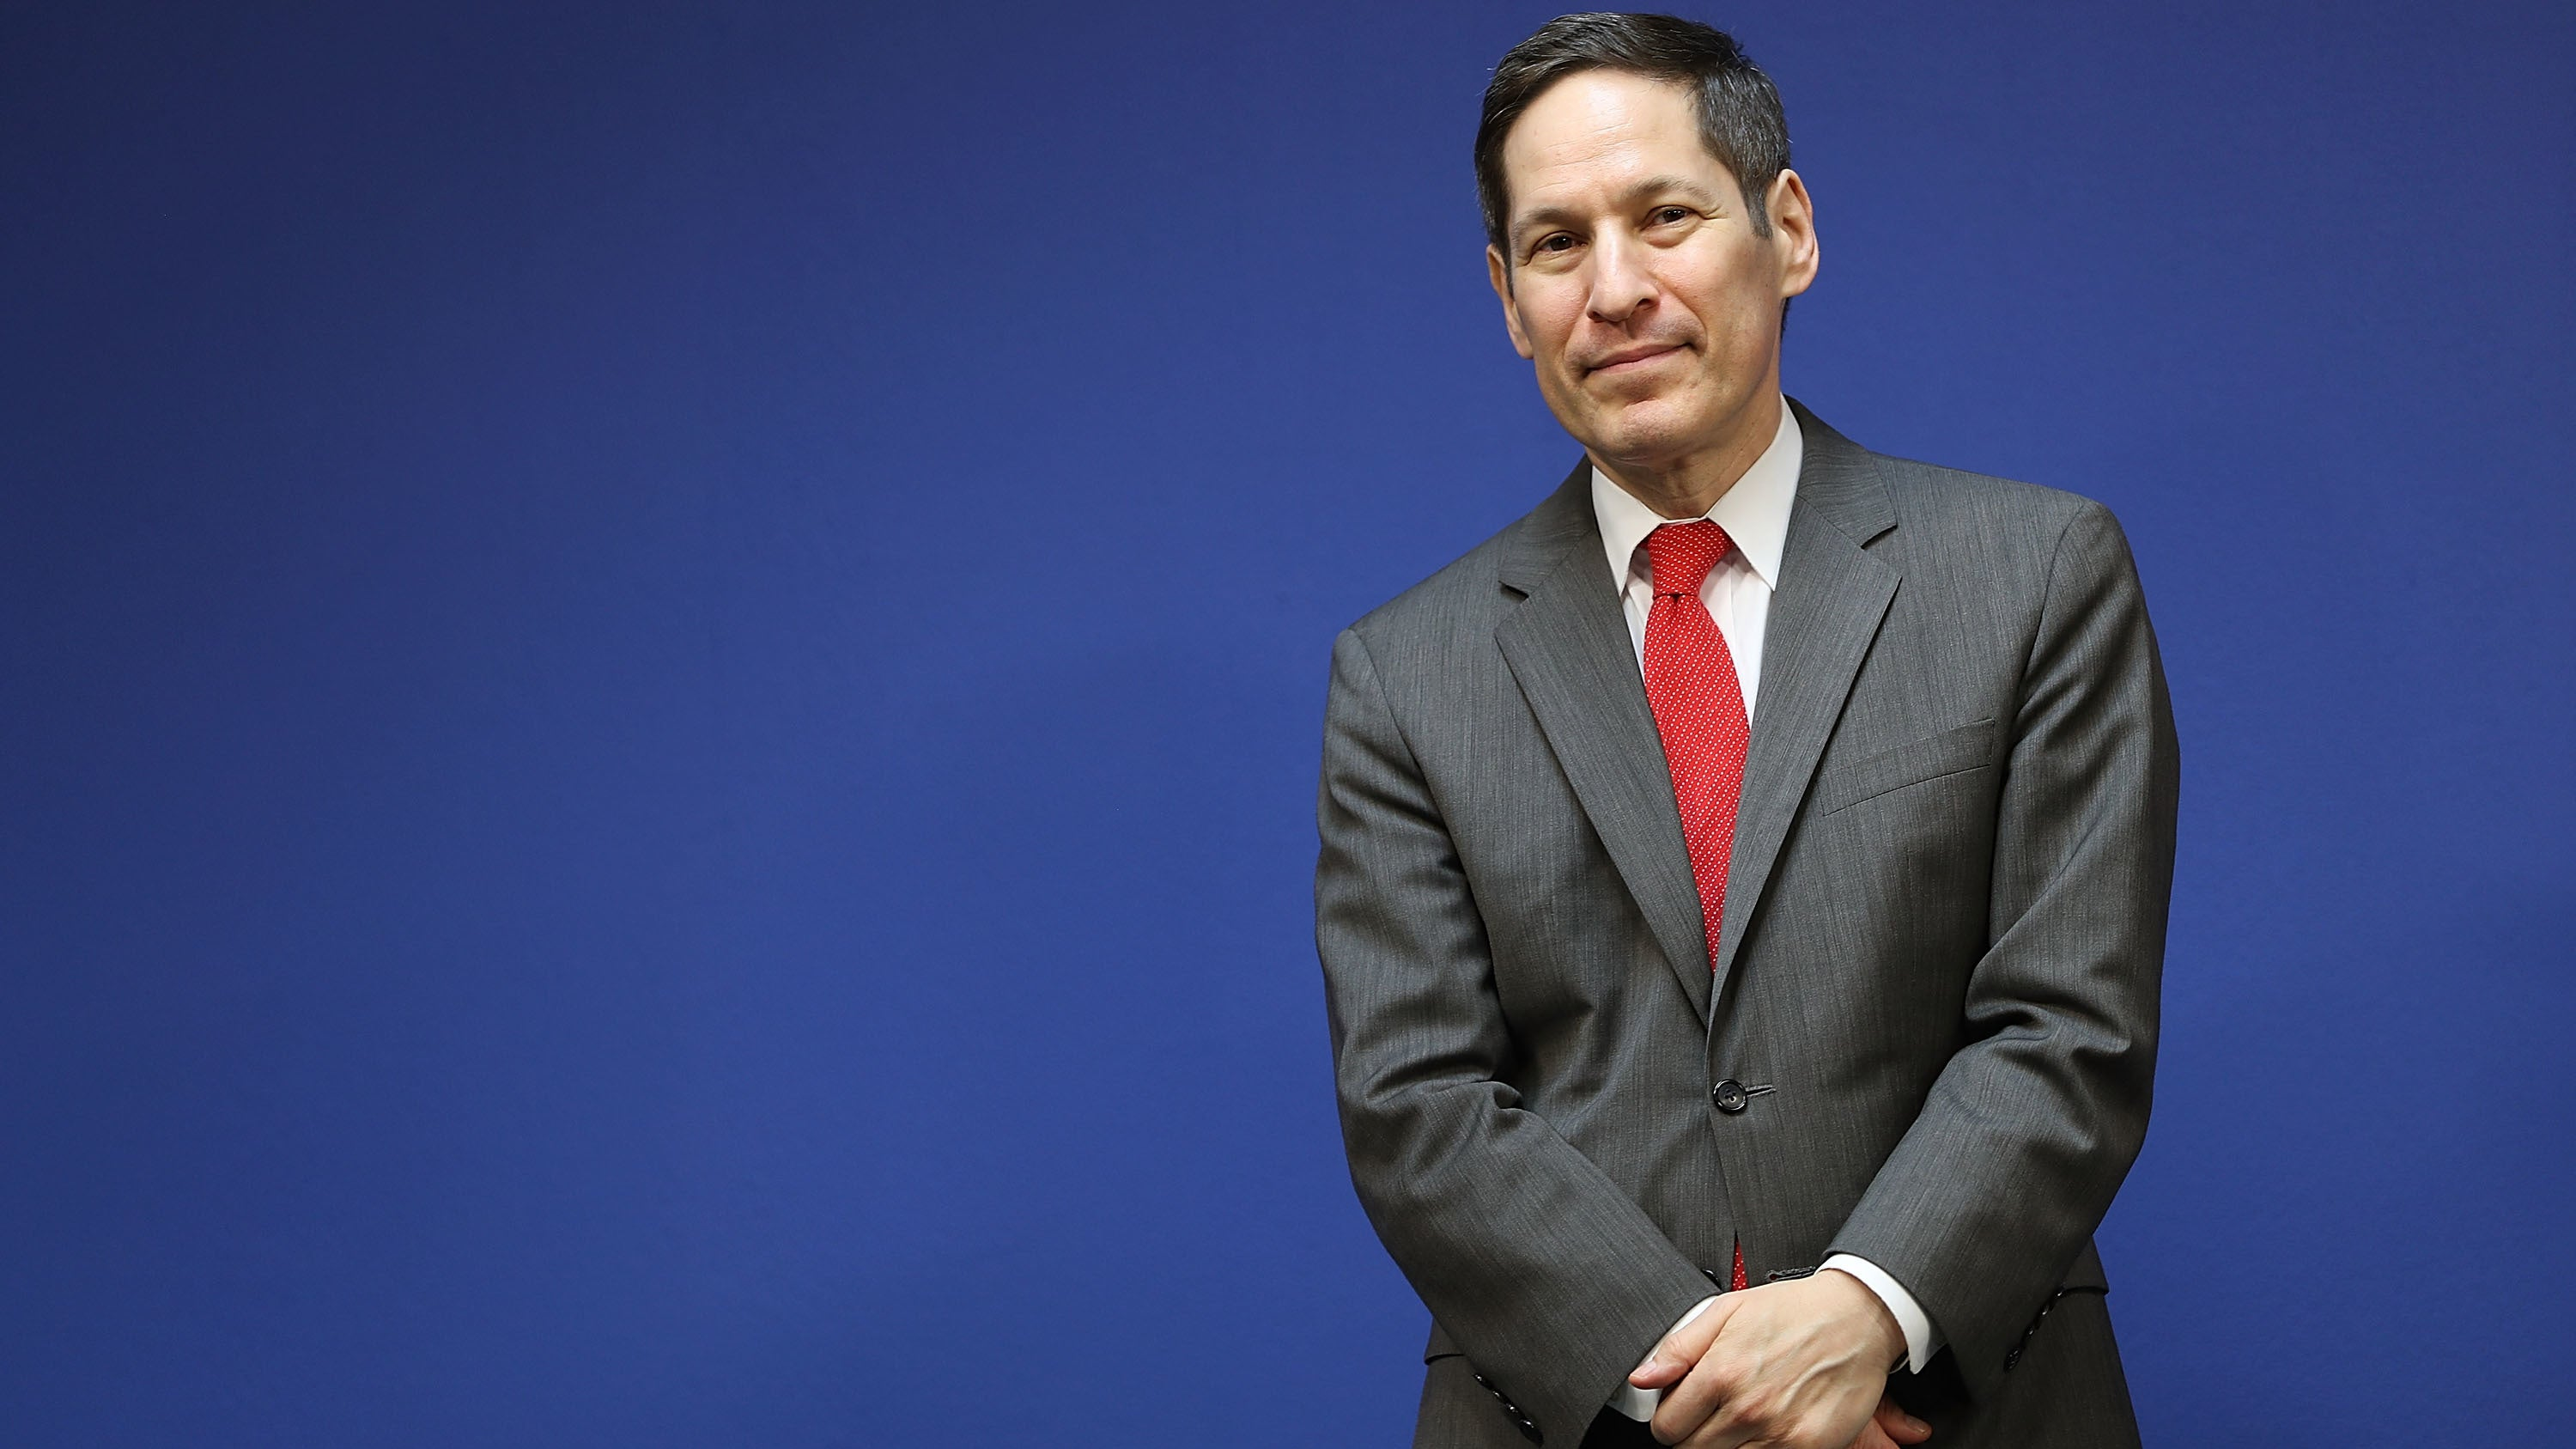 Former CDC Chief Tom Frieden Arrested On Charges Of Sexual Abuse And Harassment